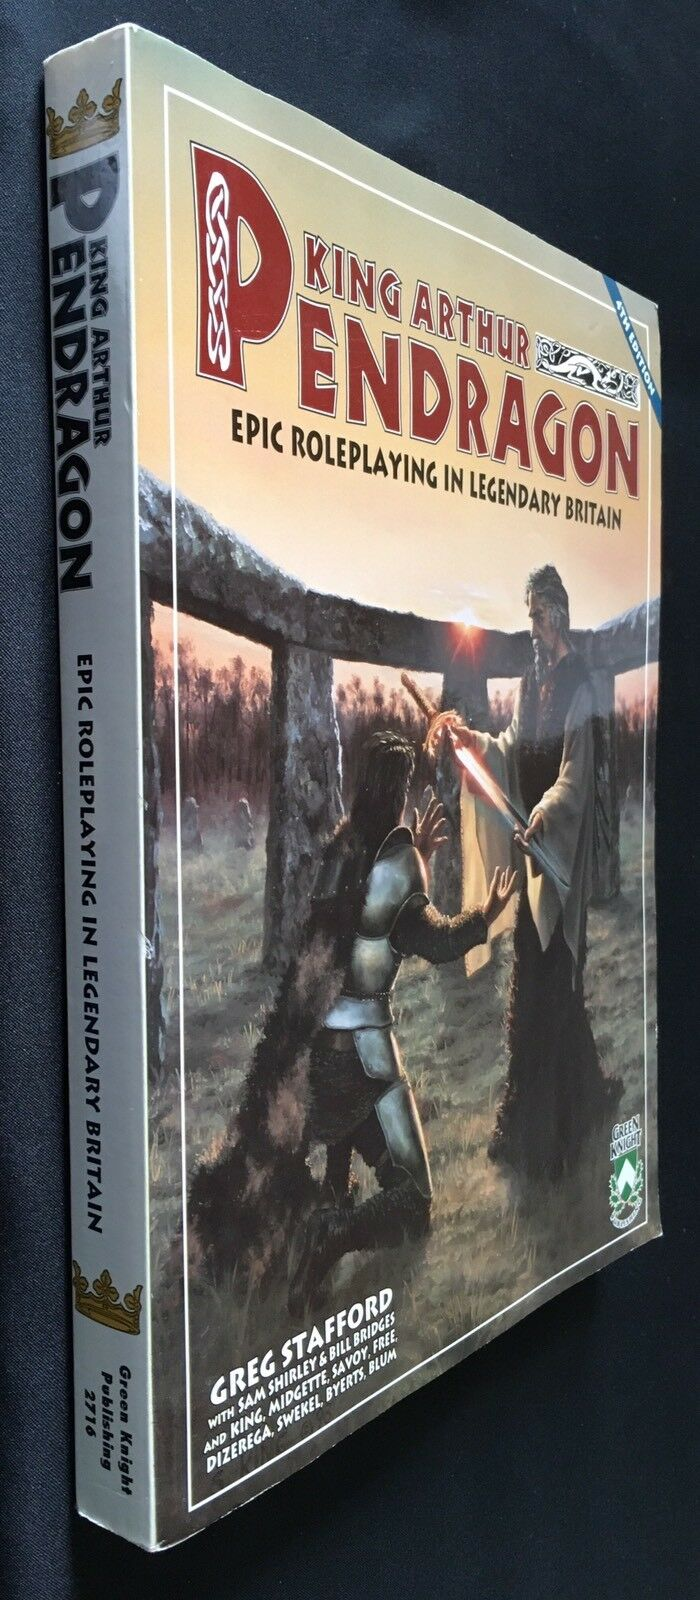 King Arthur PENDRAGON - 4th Edition - Green Knight 2716 - Epic Roleplaying